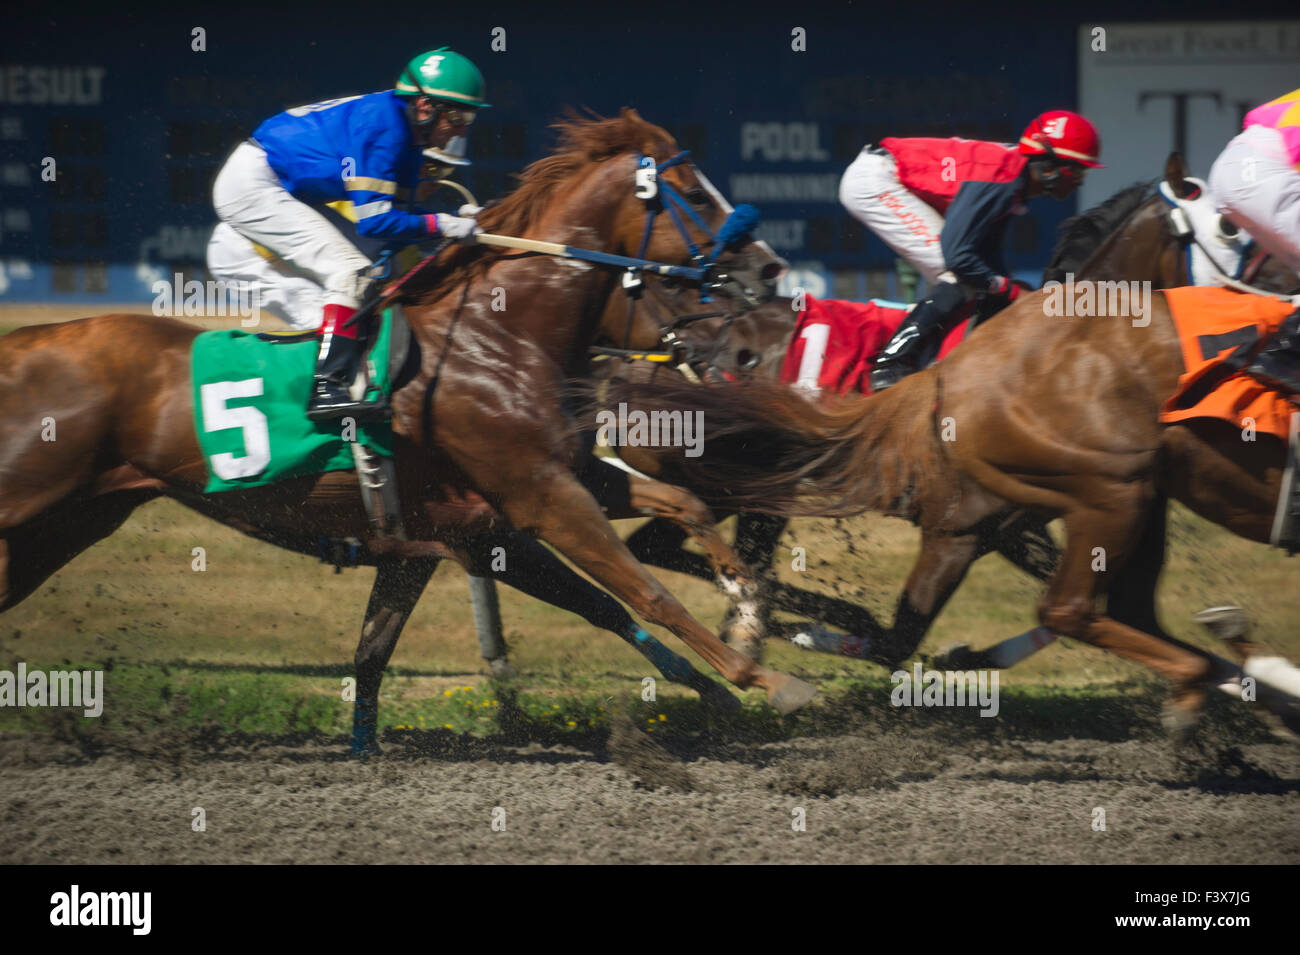 Thoroughbred horse racing at Hastings Park Vancouver British Columbia - Stock Image